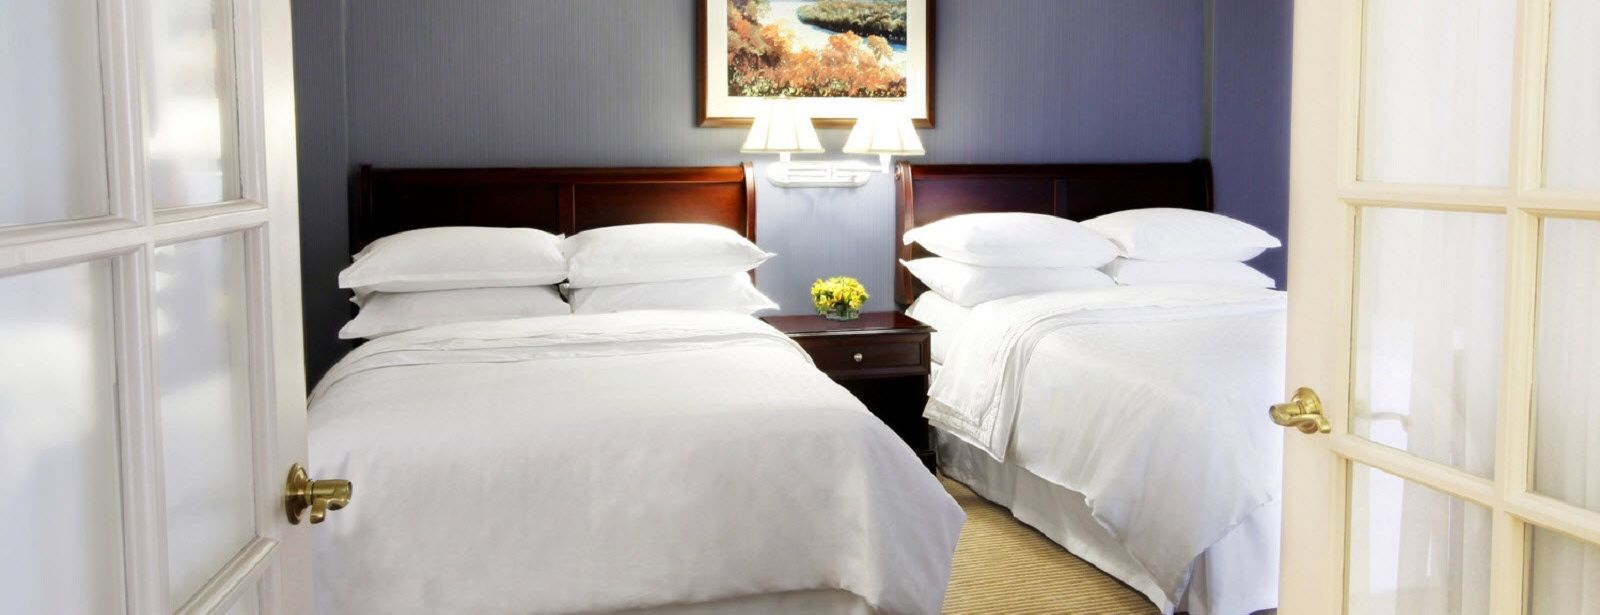 Sheraton Hotels - Double Bed Suite